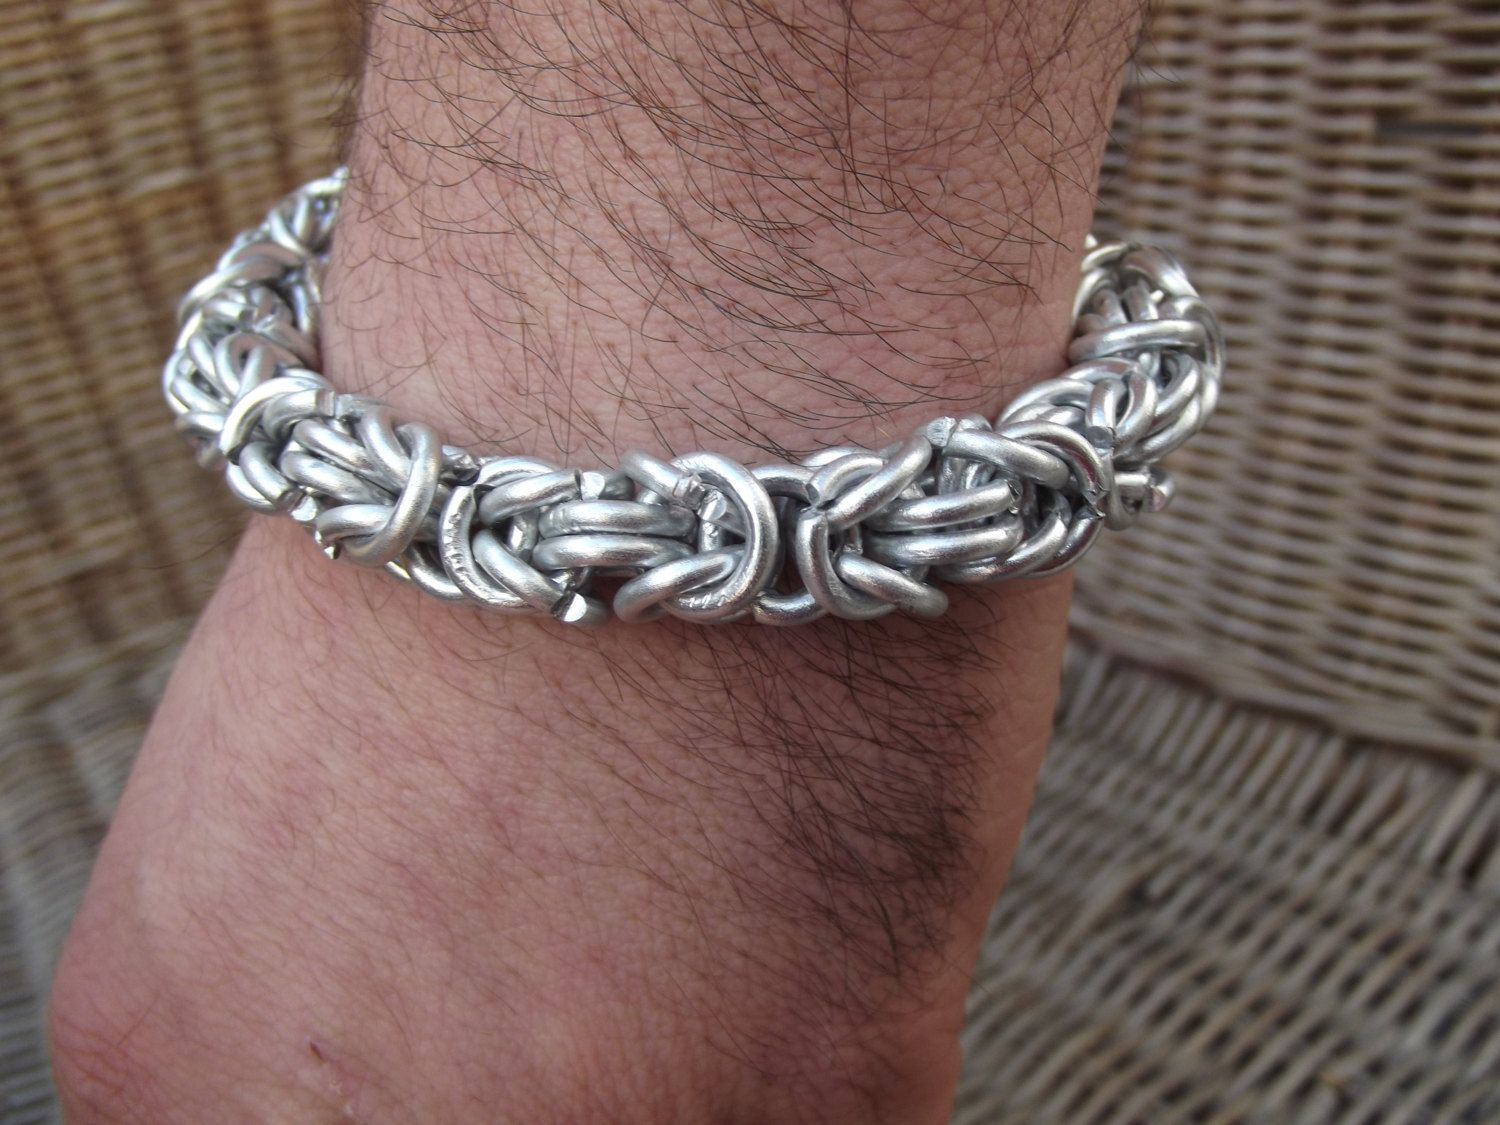 az bracelet silver west bling indian apa sterling style bangle jewelry